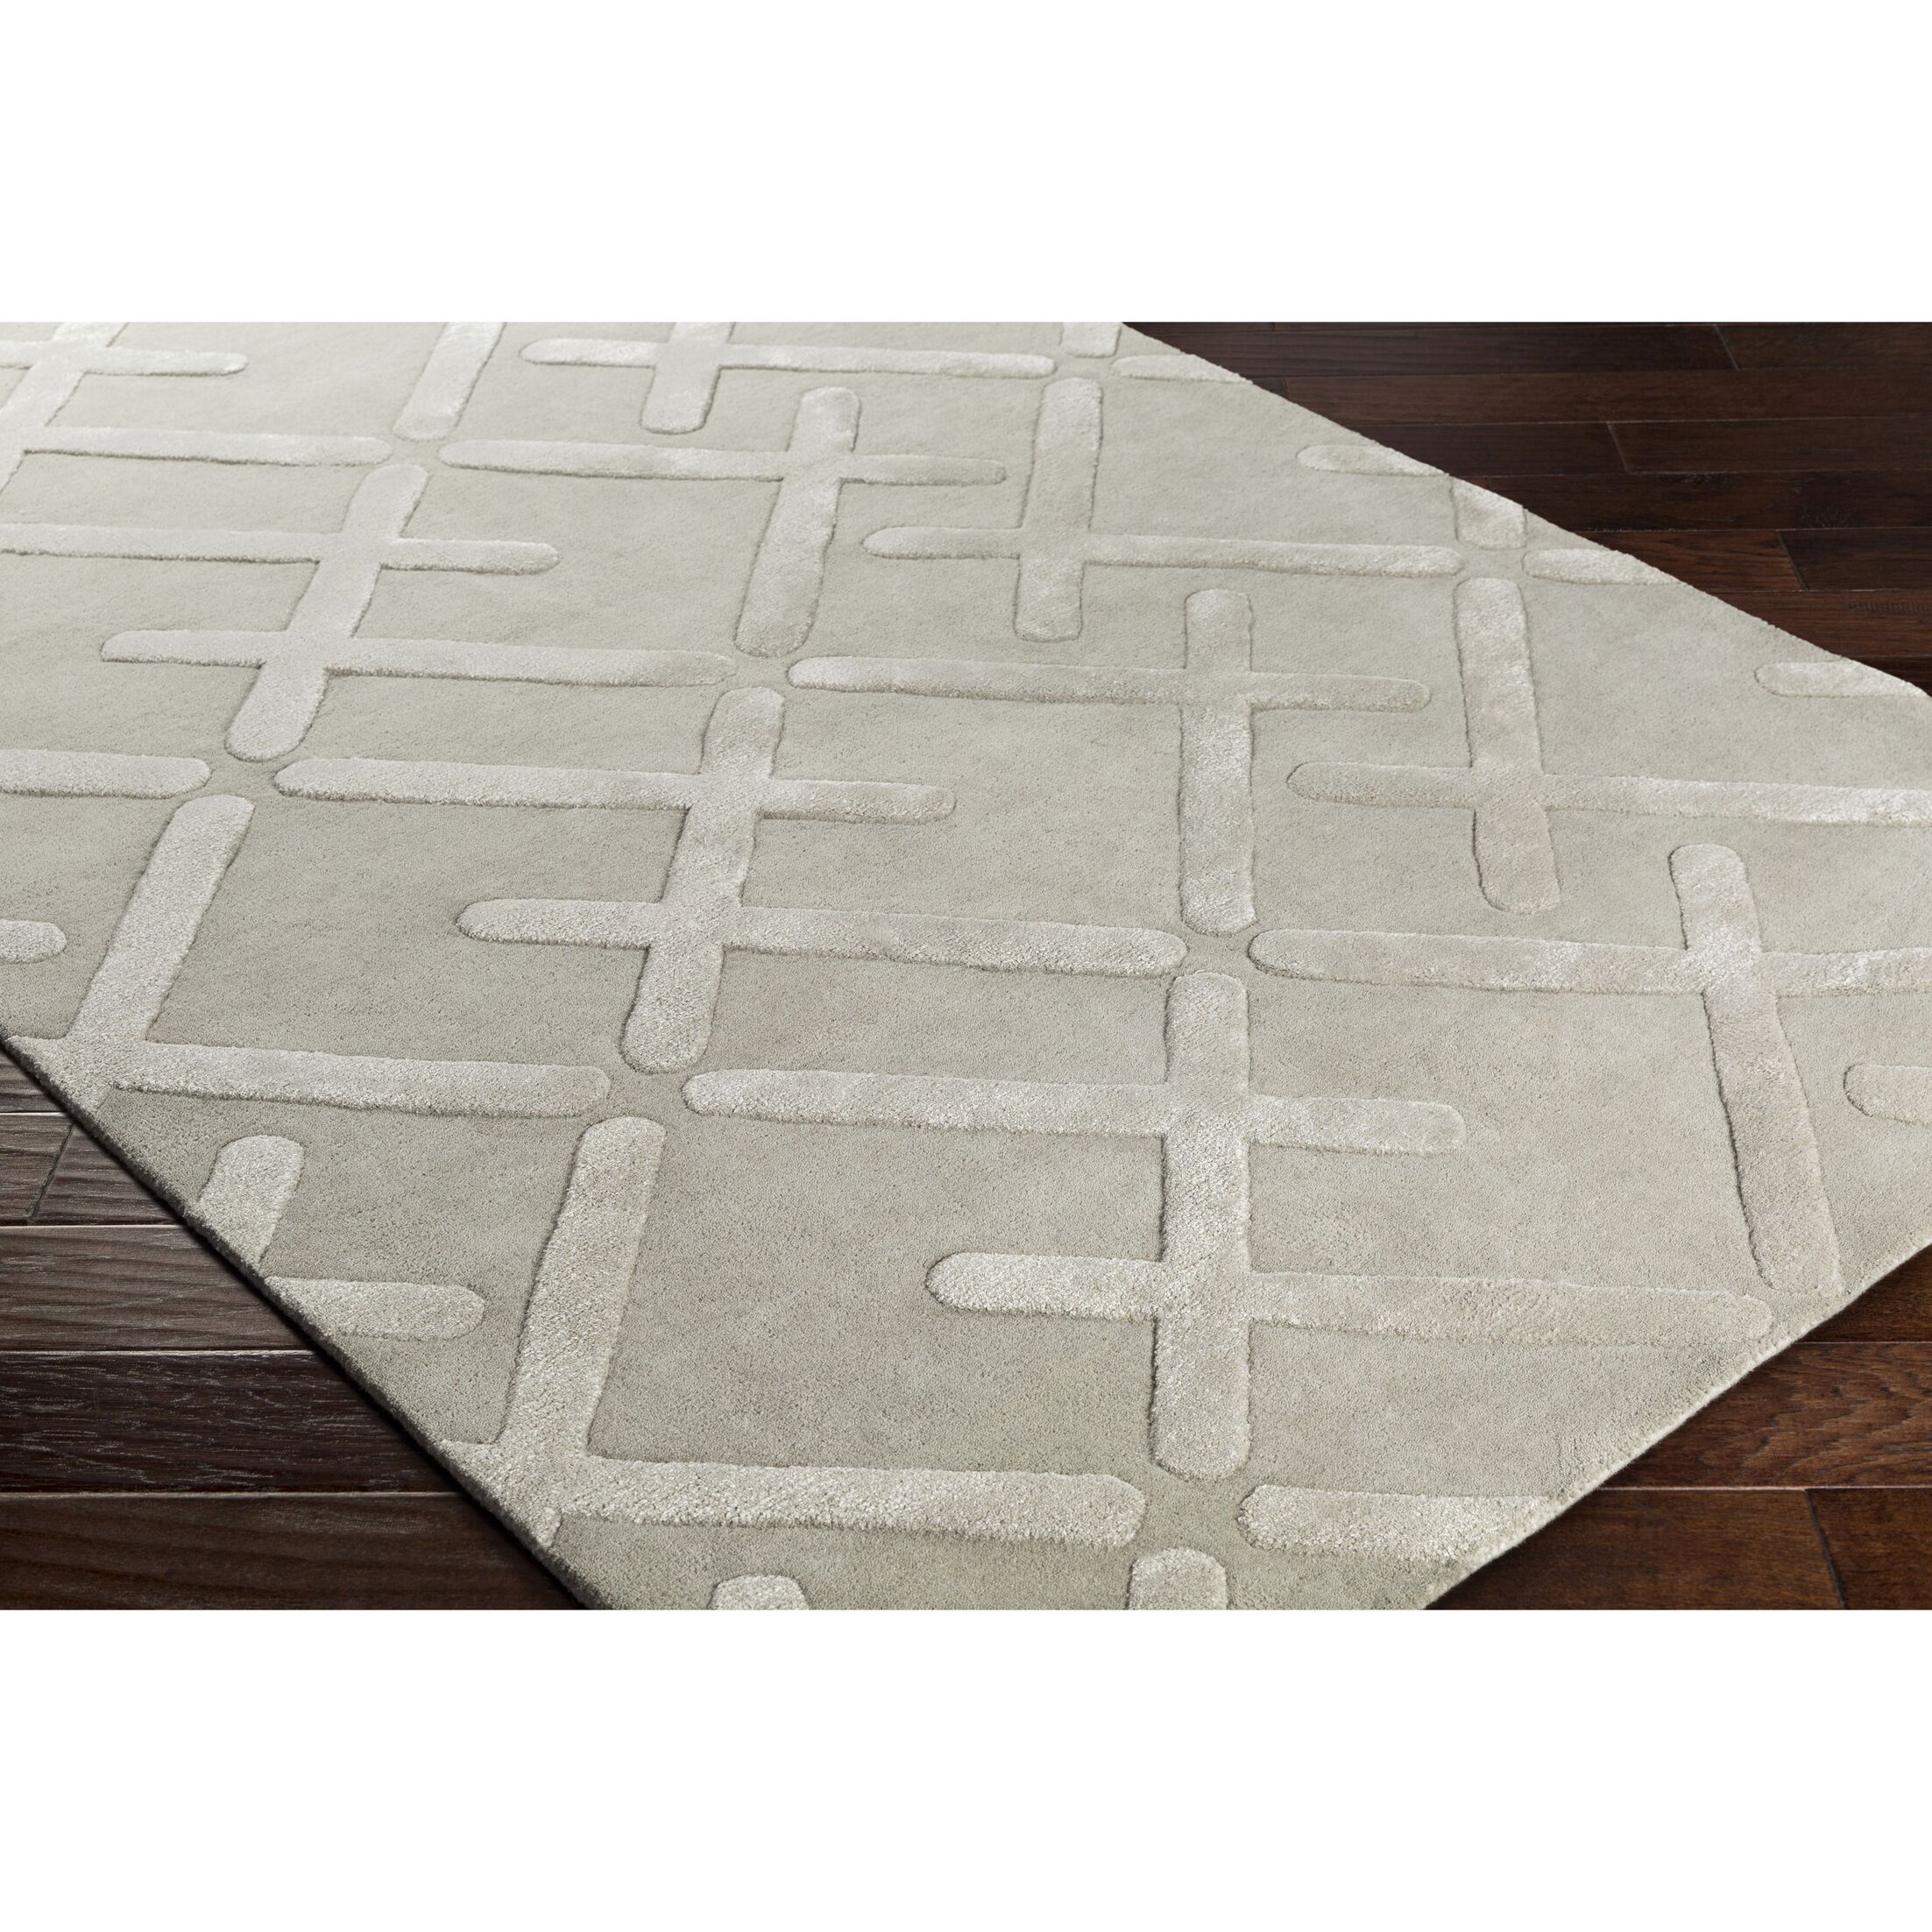 Vazquez Hand-Tufted Neutral/Gray Area Rug Rug Size: Rectangle 5' x 7'6